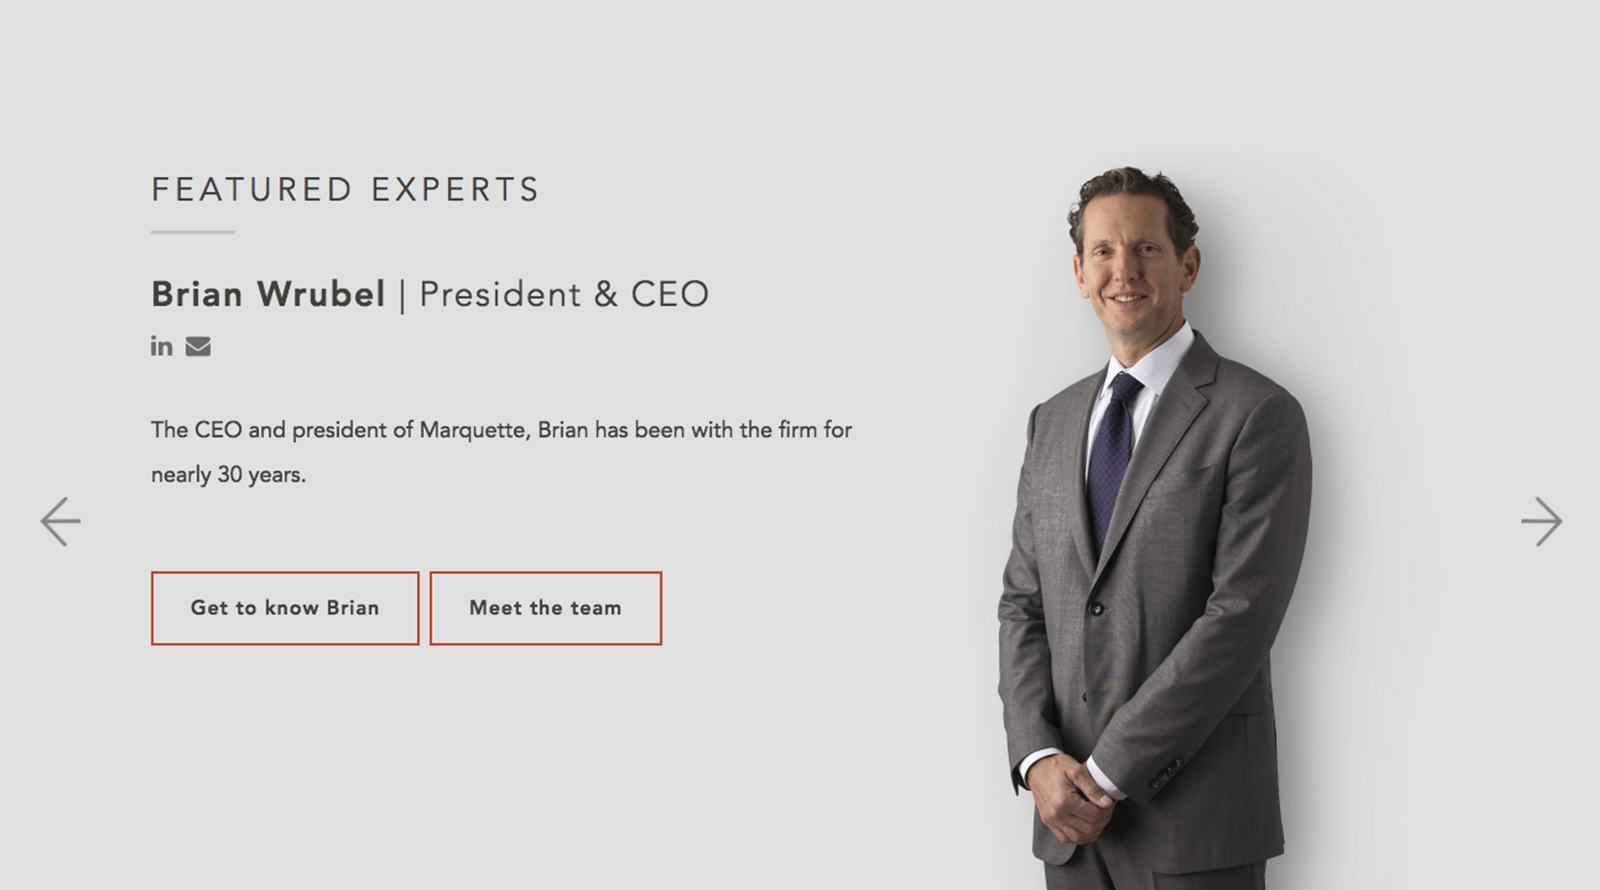 Marquette Associates Expert Panel Design by Blue Flame Thinking